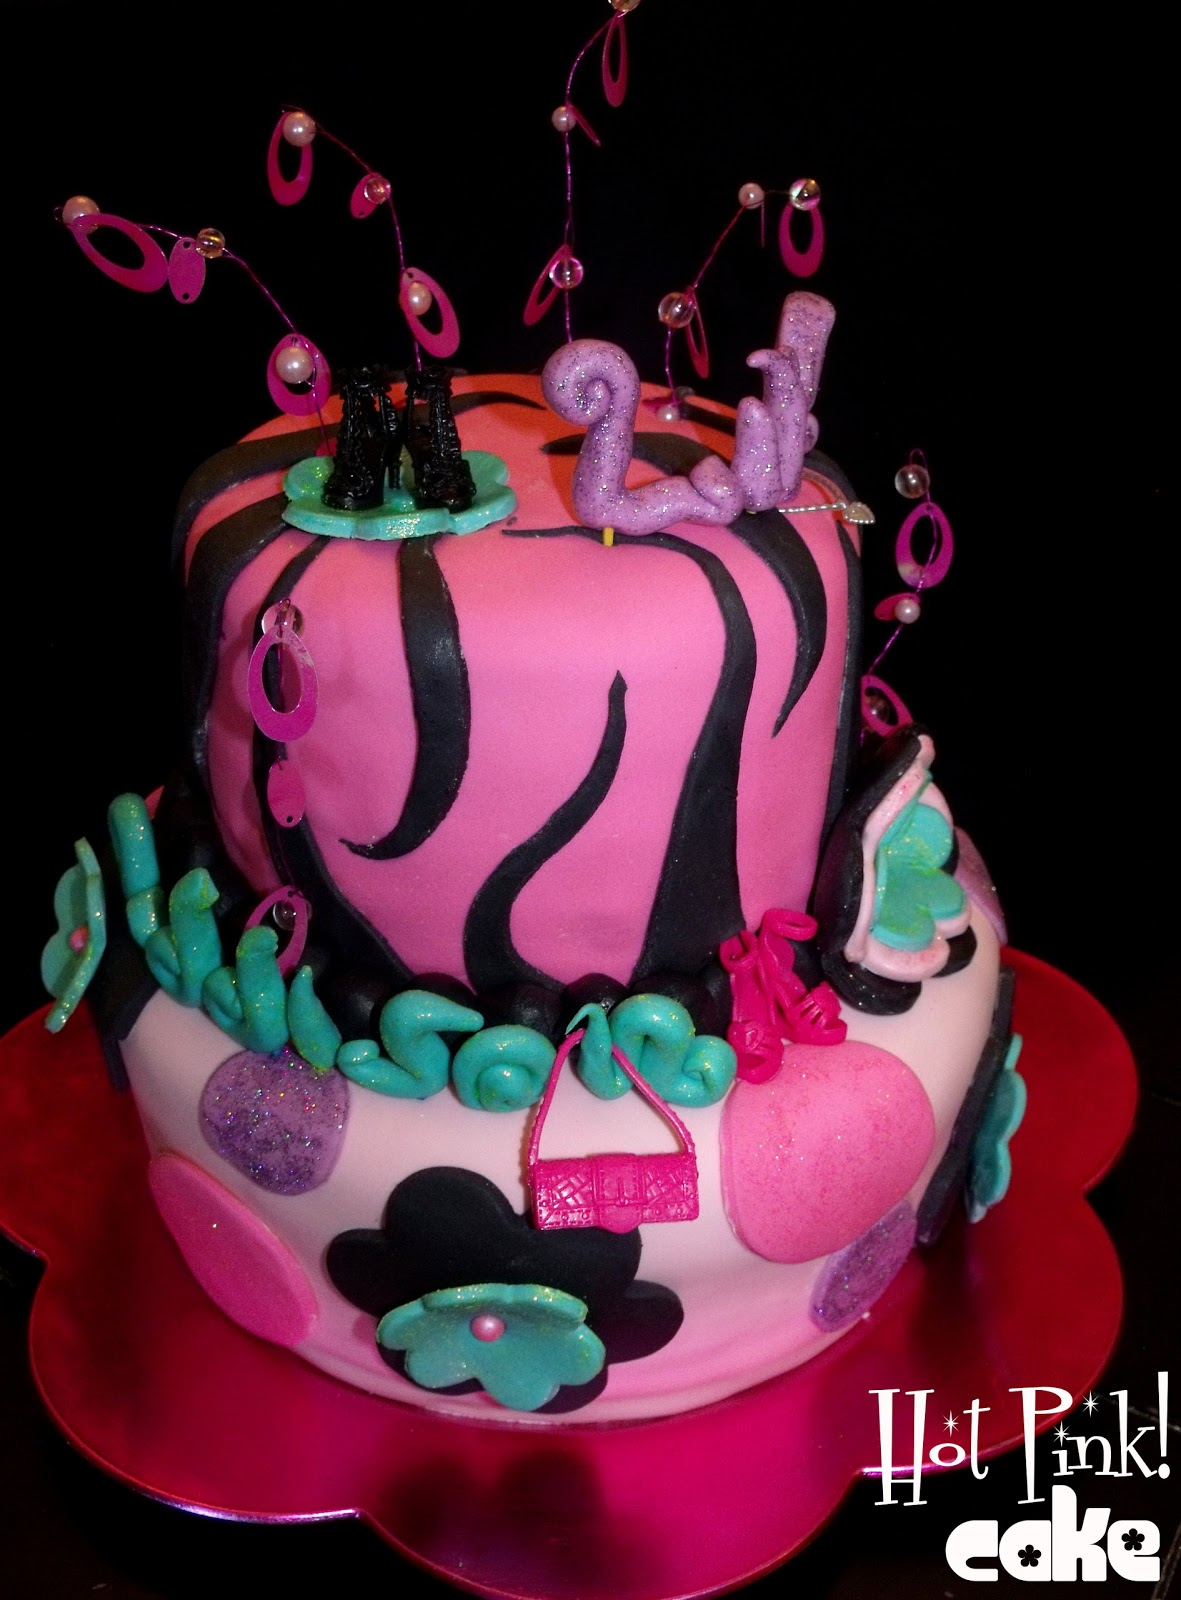 Hot Pink Cakes Super Girly Cake